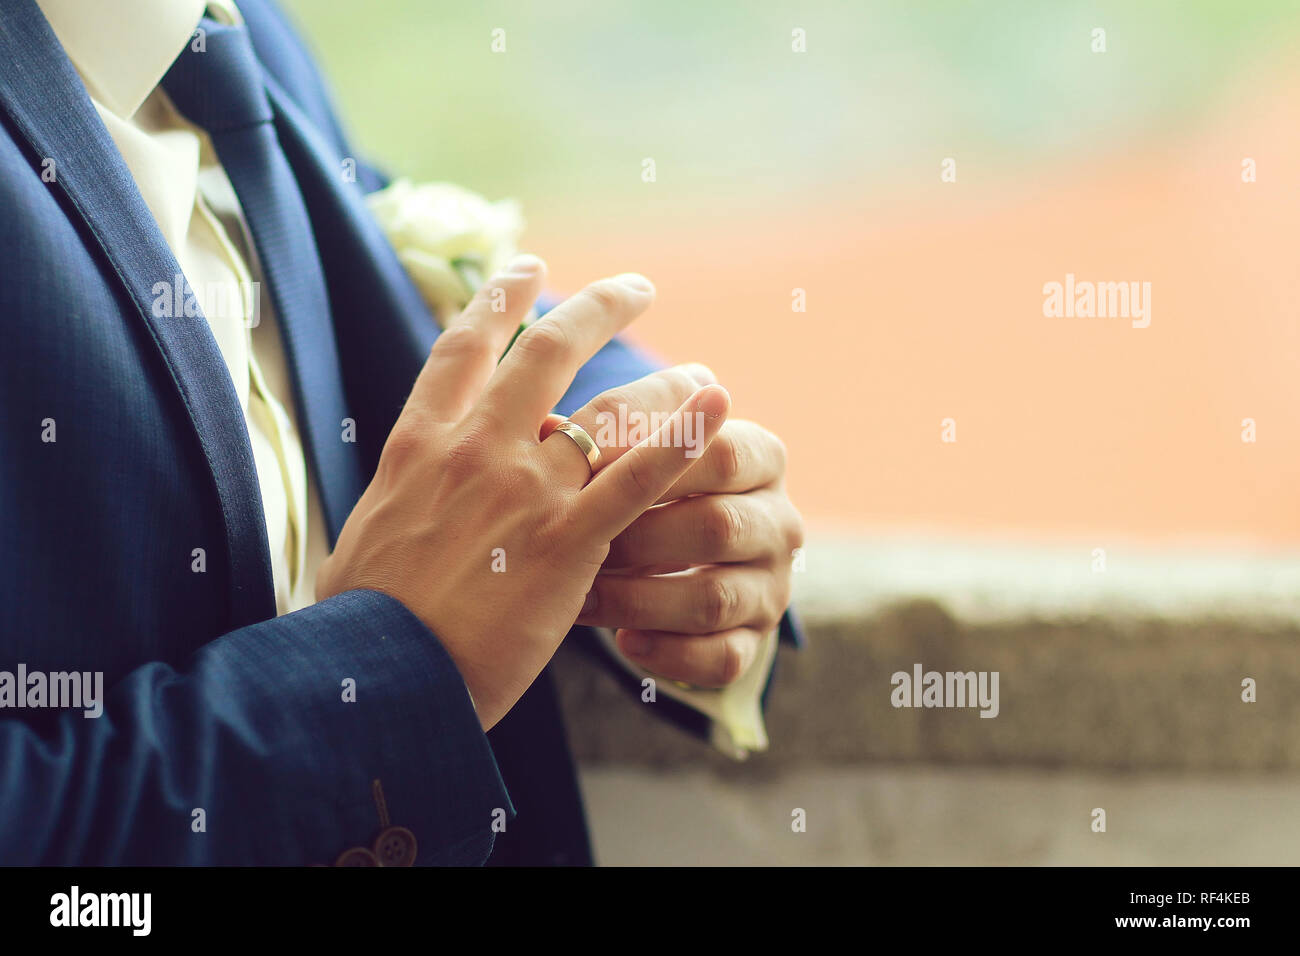 Groom touches wedding ring - Stock Image